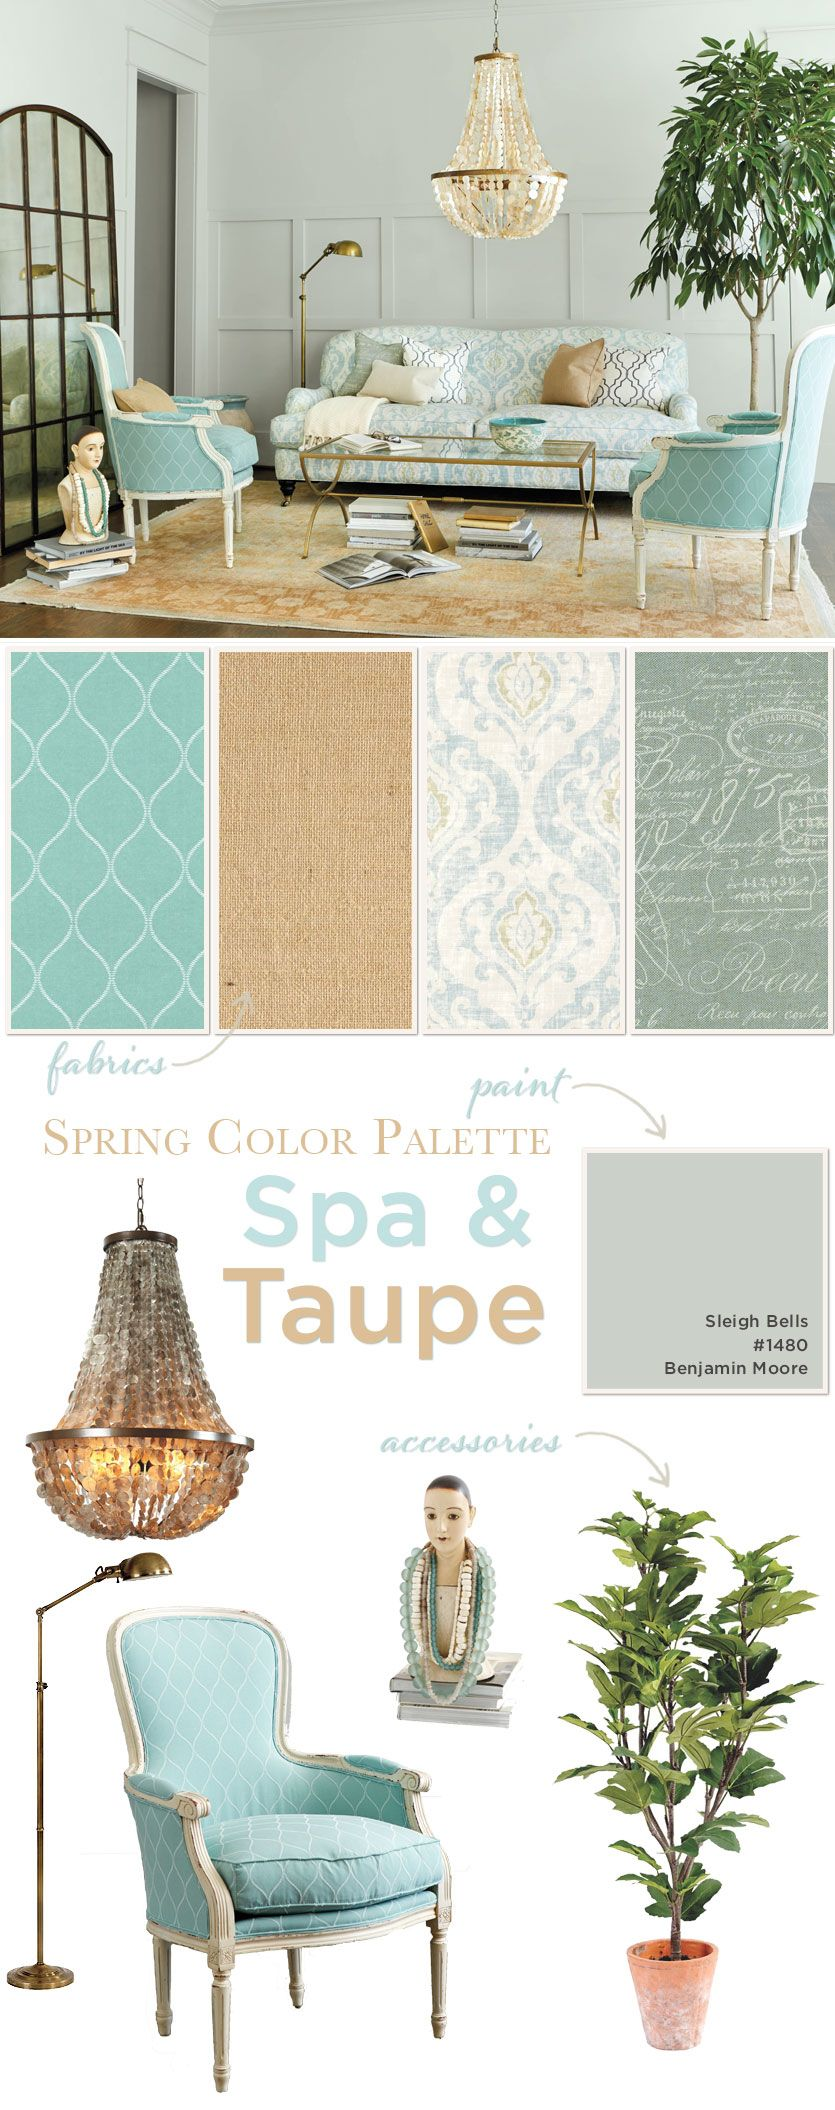 living room in spa u0026 taupe color palette taupe spring color